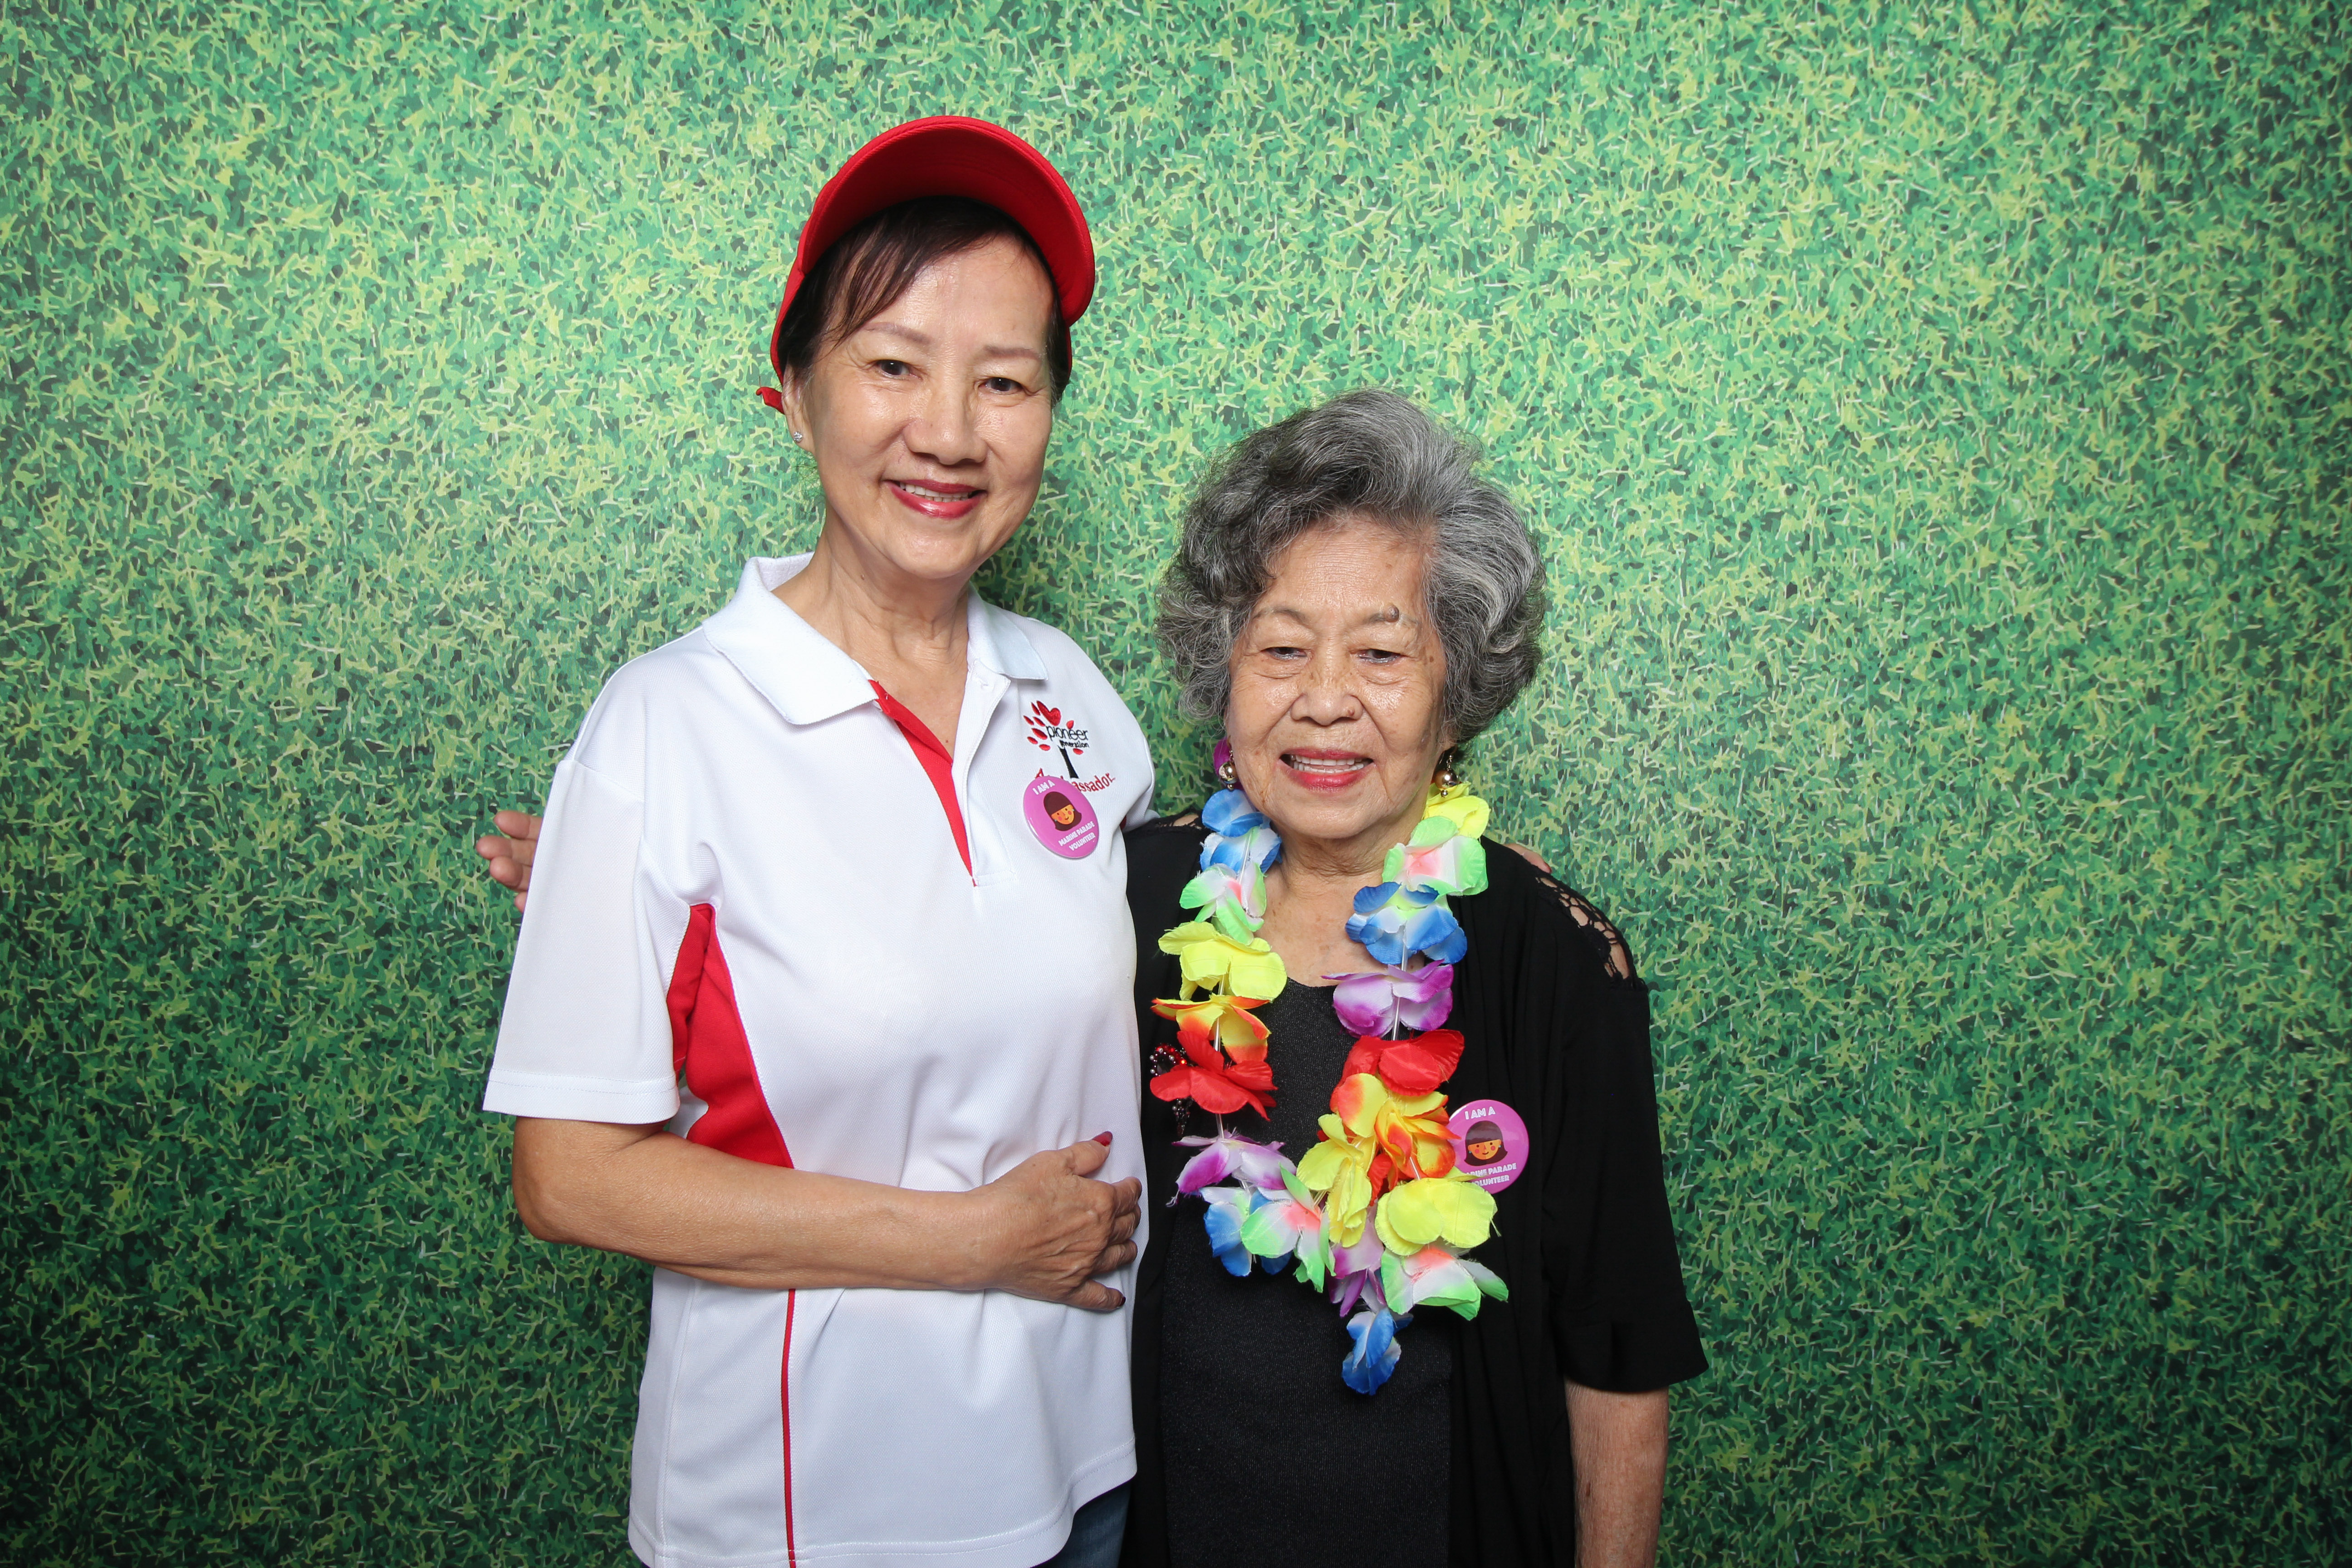 events photo booth singapore-4